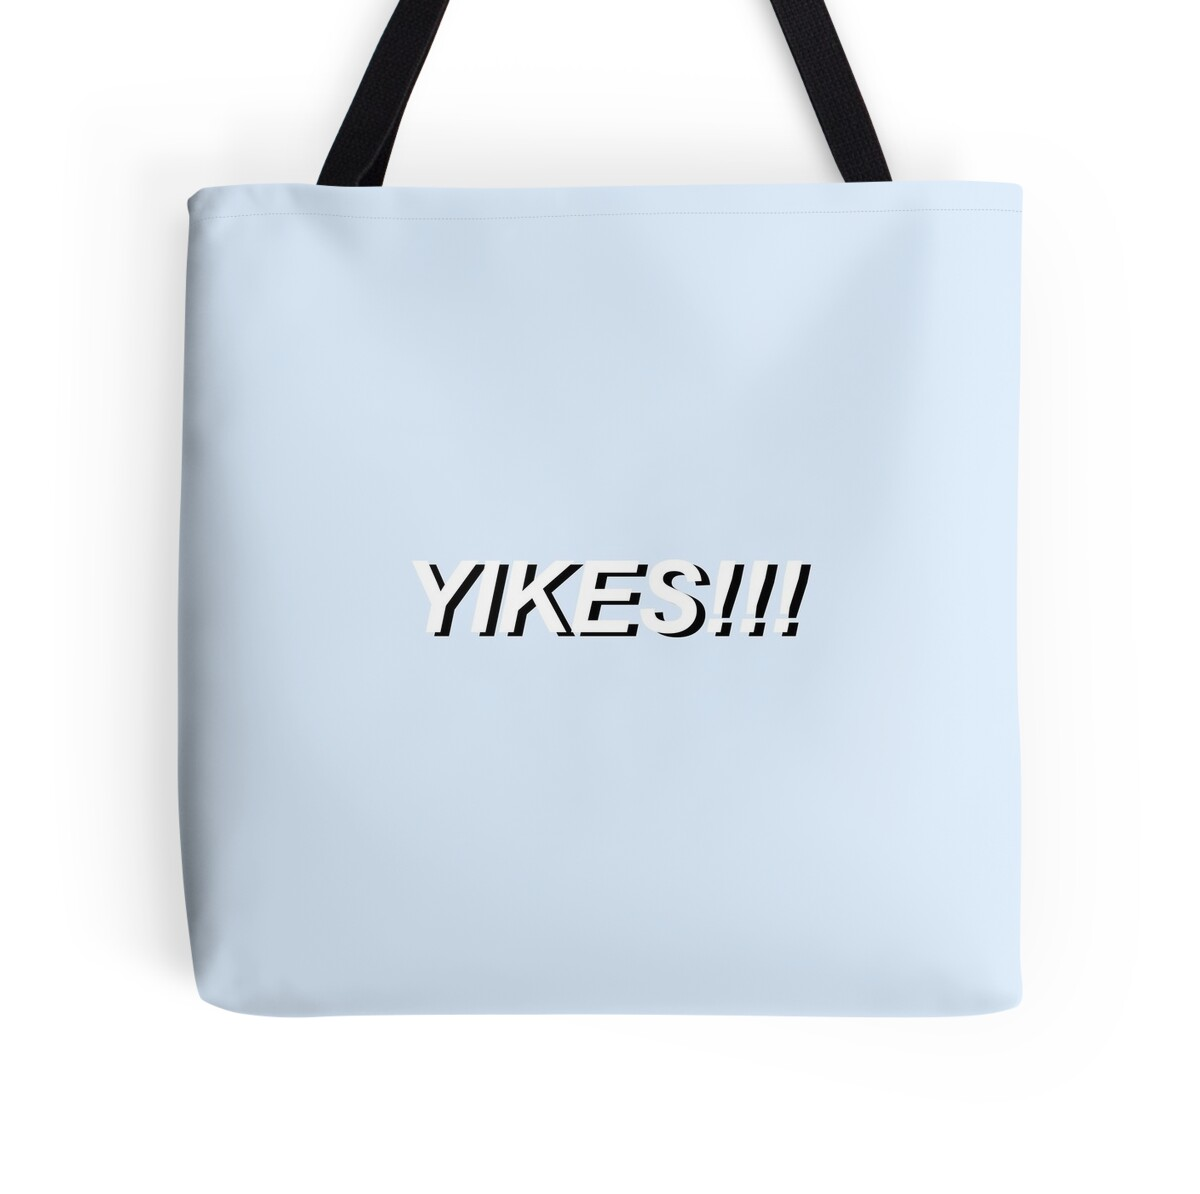 Quot Yikes Tumblr Aesthetic Pop Art Quot Tote Bags By Auserie